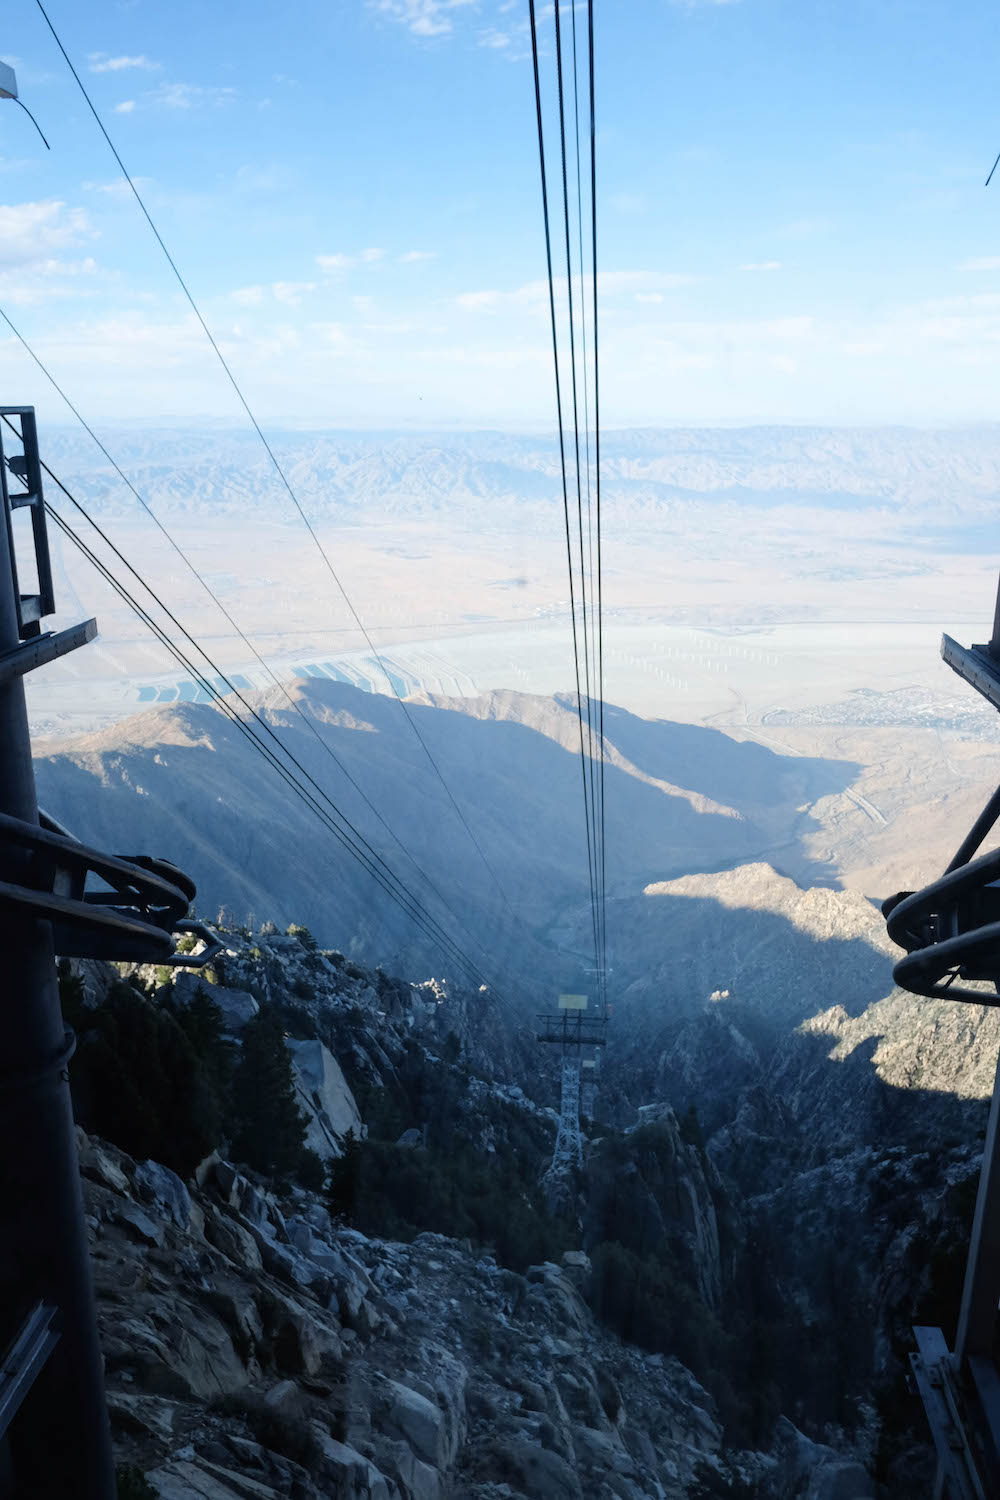 palm springs travel guide - the stripe; palm springs tram